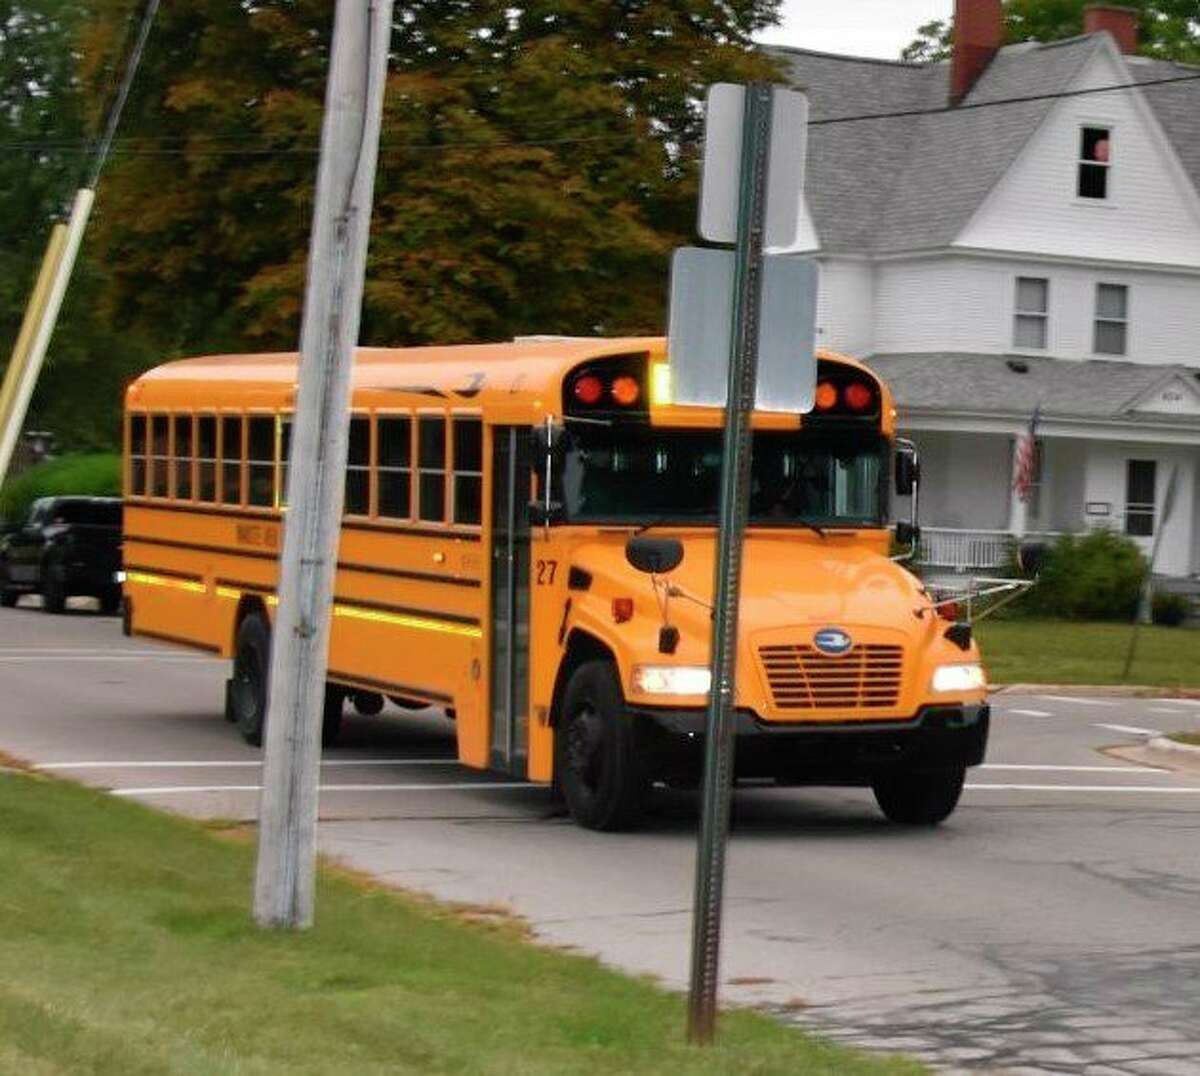 Bear Lake, Kaleva Norman Dickson and Manistee Area Public Schools were each made aware Monday of staff or students testing positive for COVID-19. (File photo)